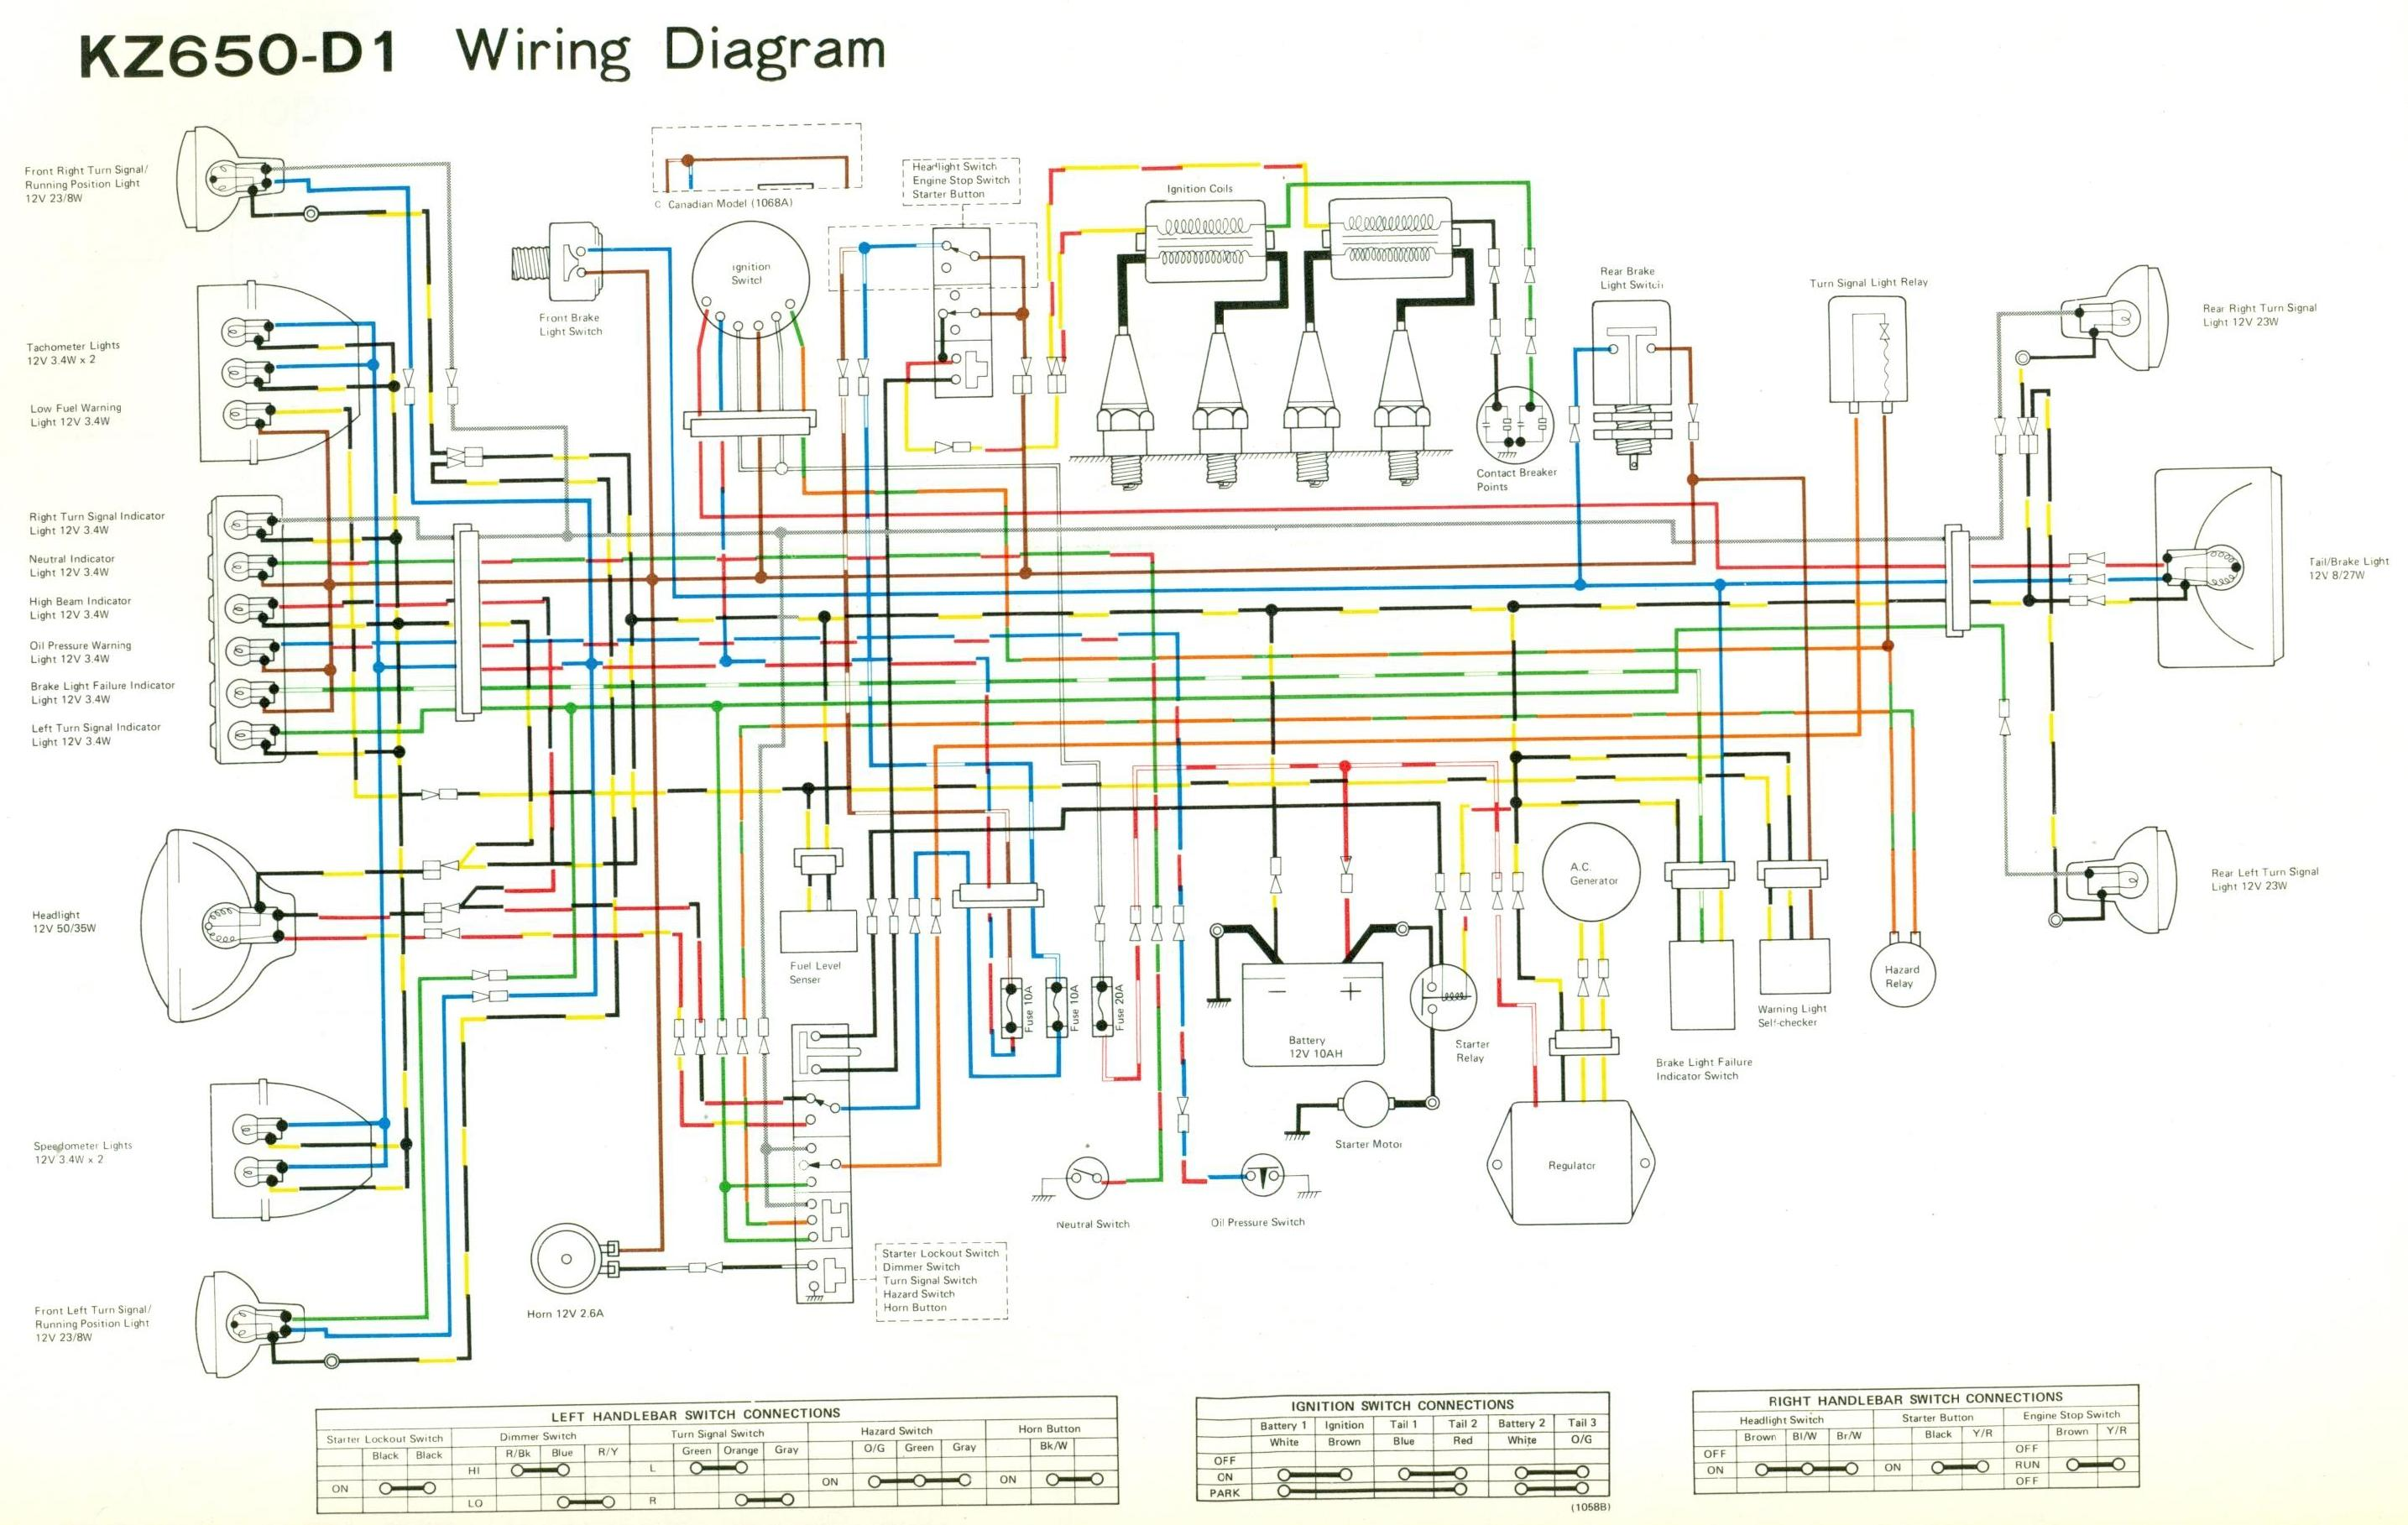 Wiring Diagrams 70 Trail Bike Parts On Ct70 Pit Harness Diagram Kz650 D